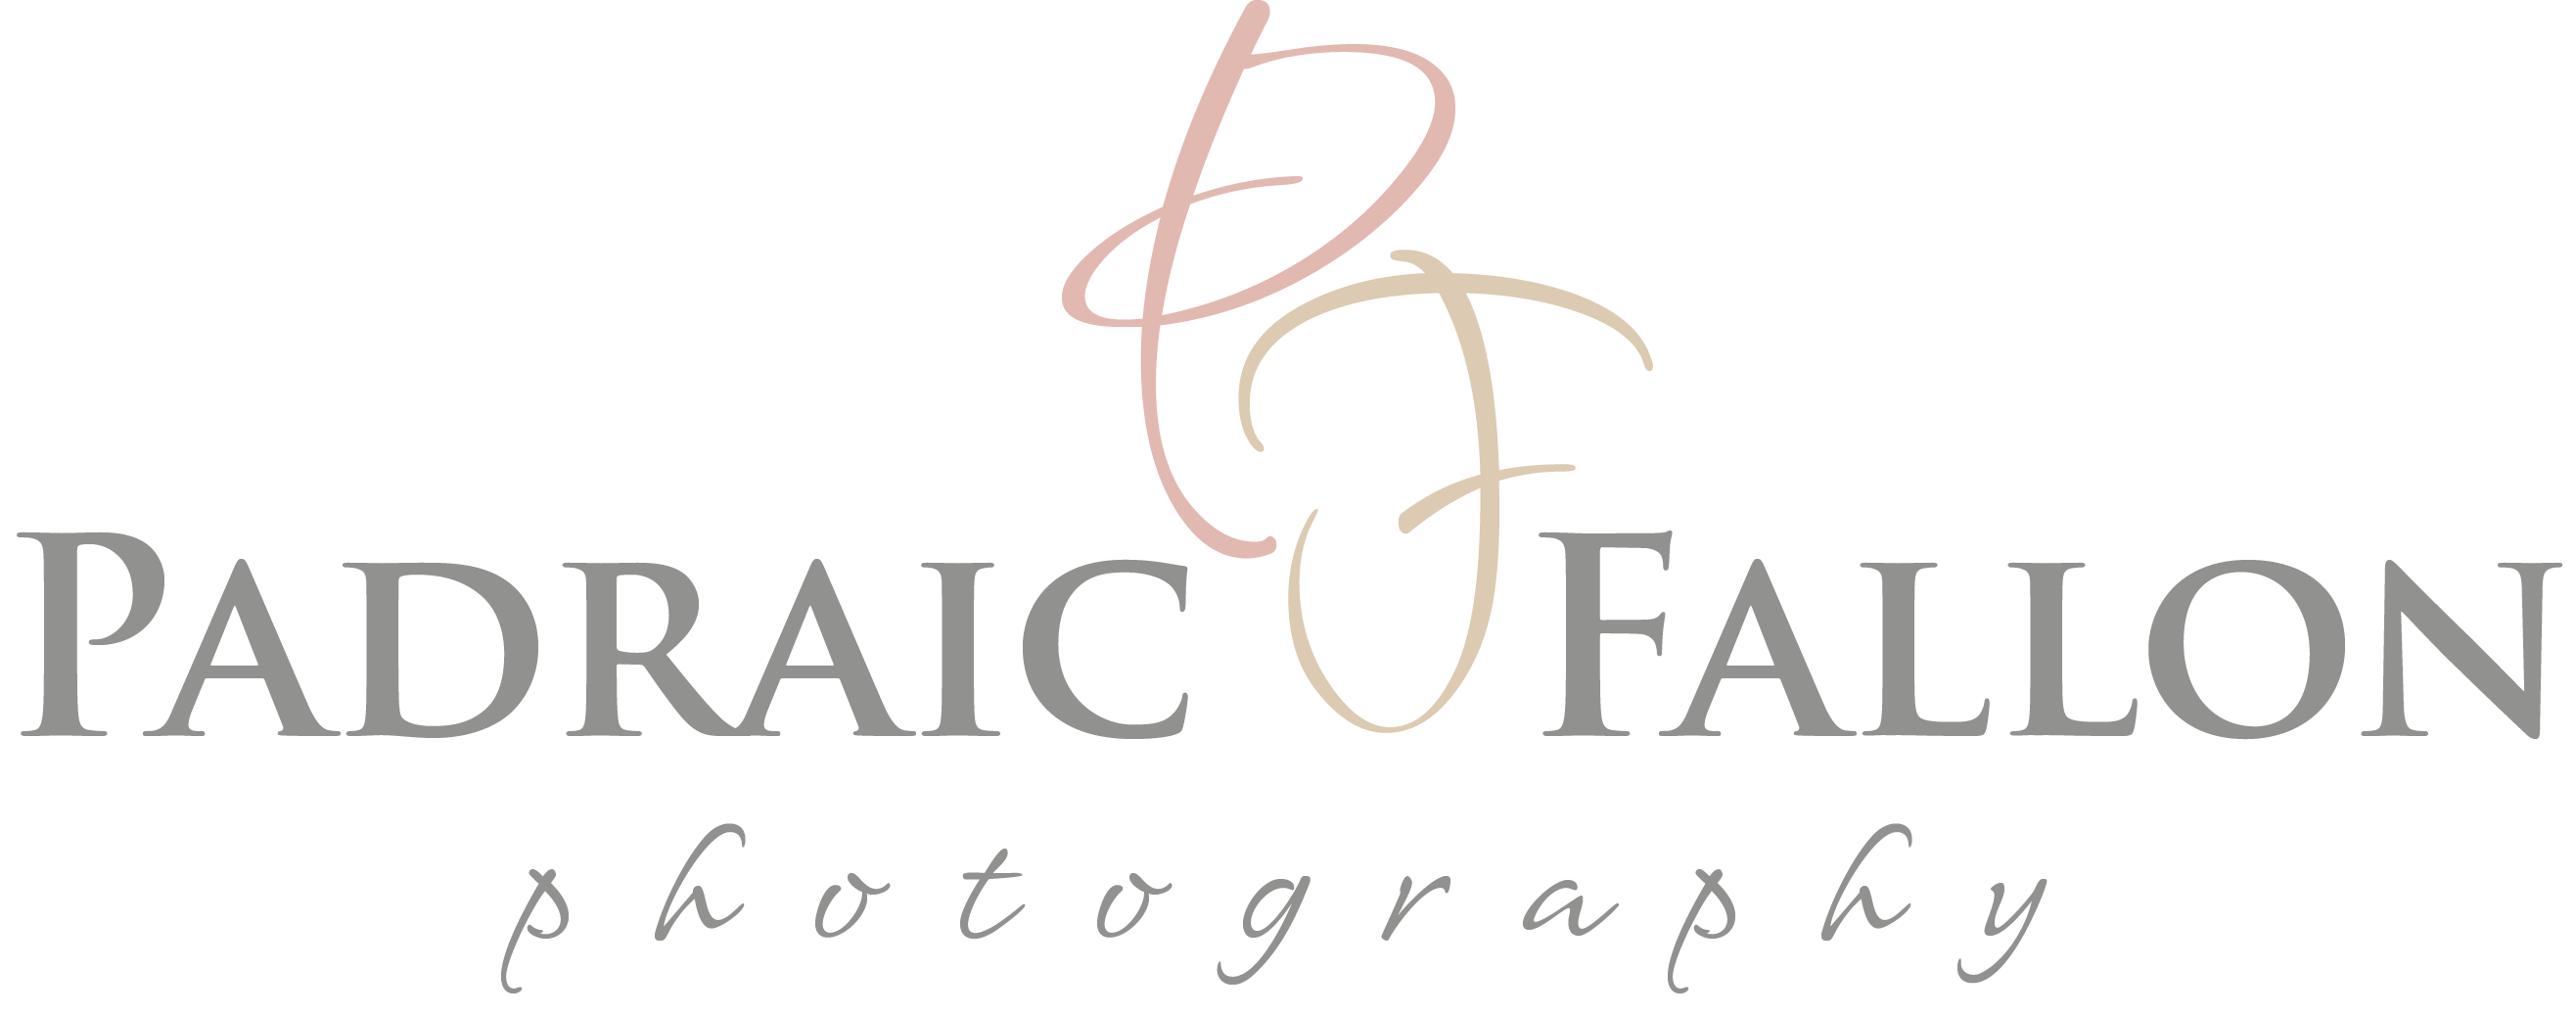 Wedding Photographers Galway, Padraic Fallon photography